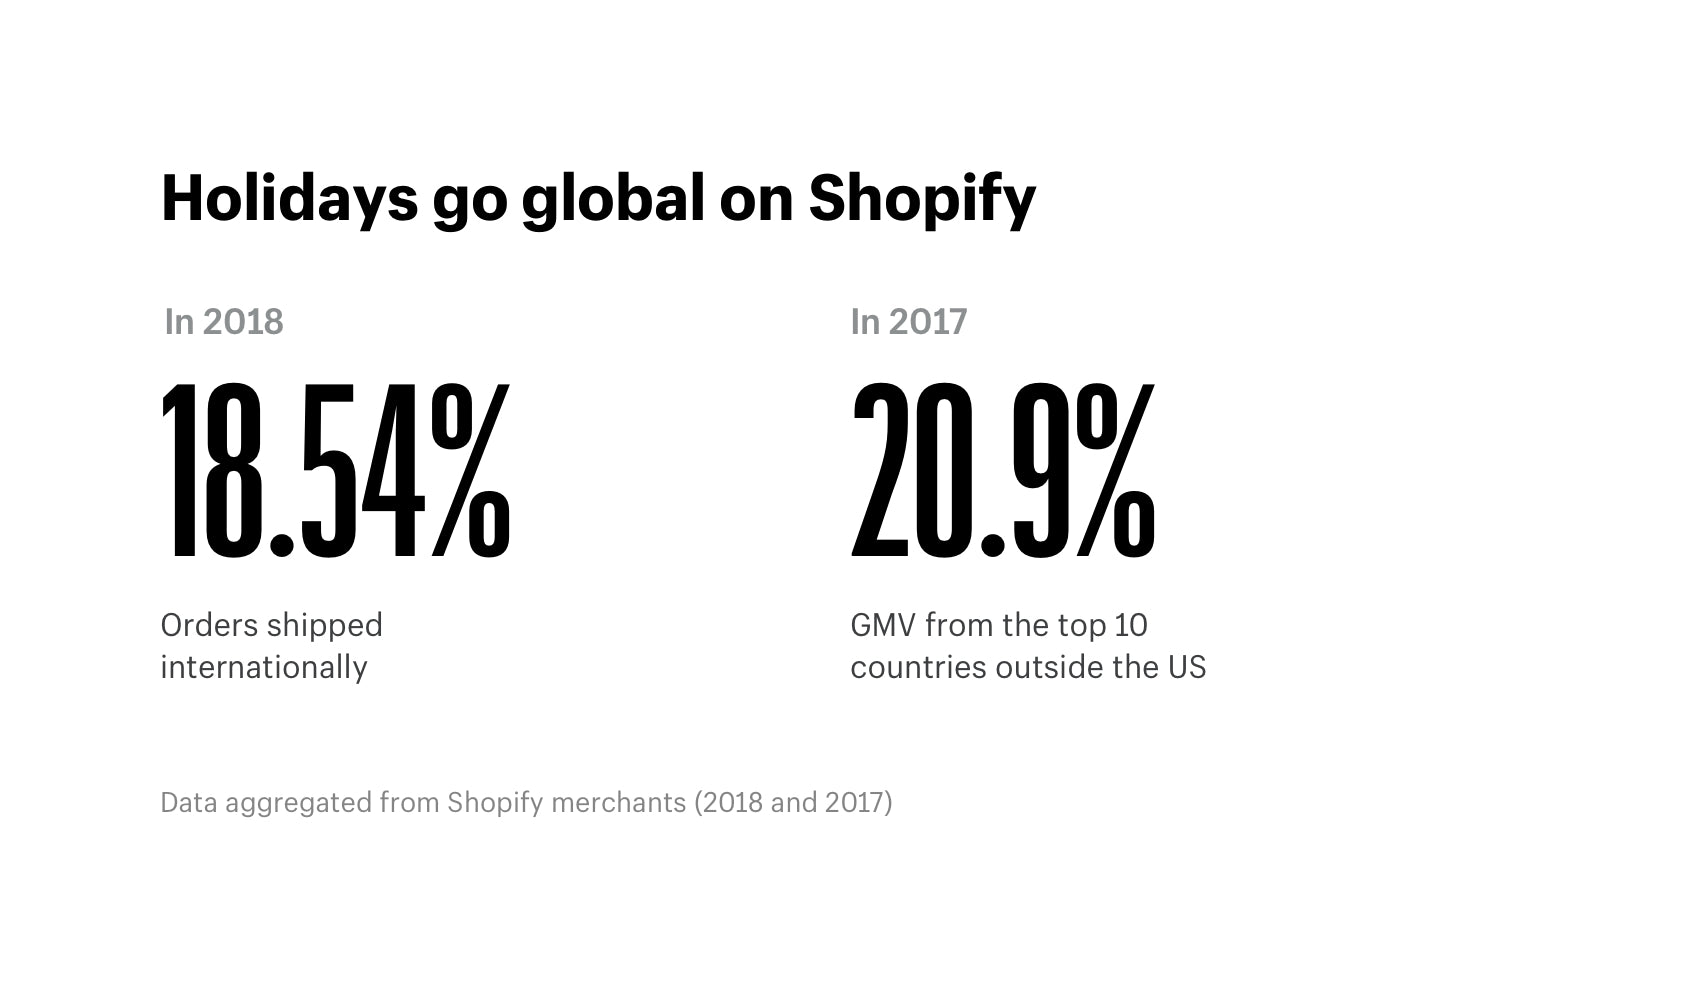 Holiday shopping goes global on Shopify